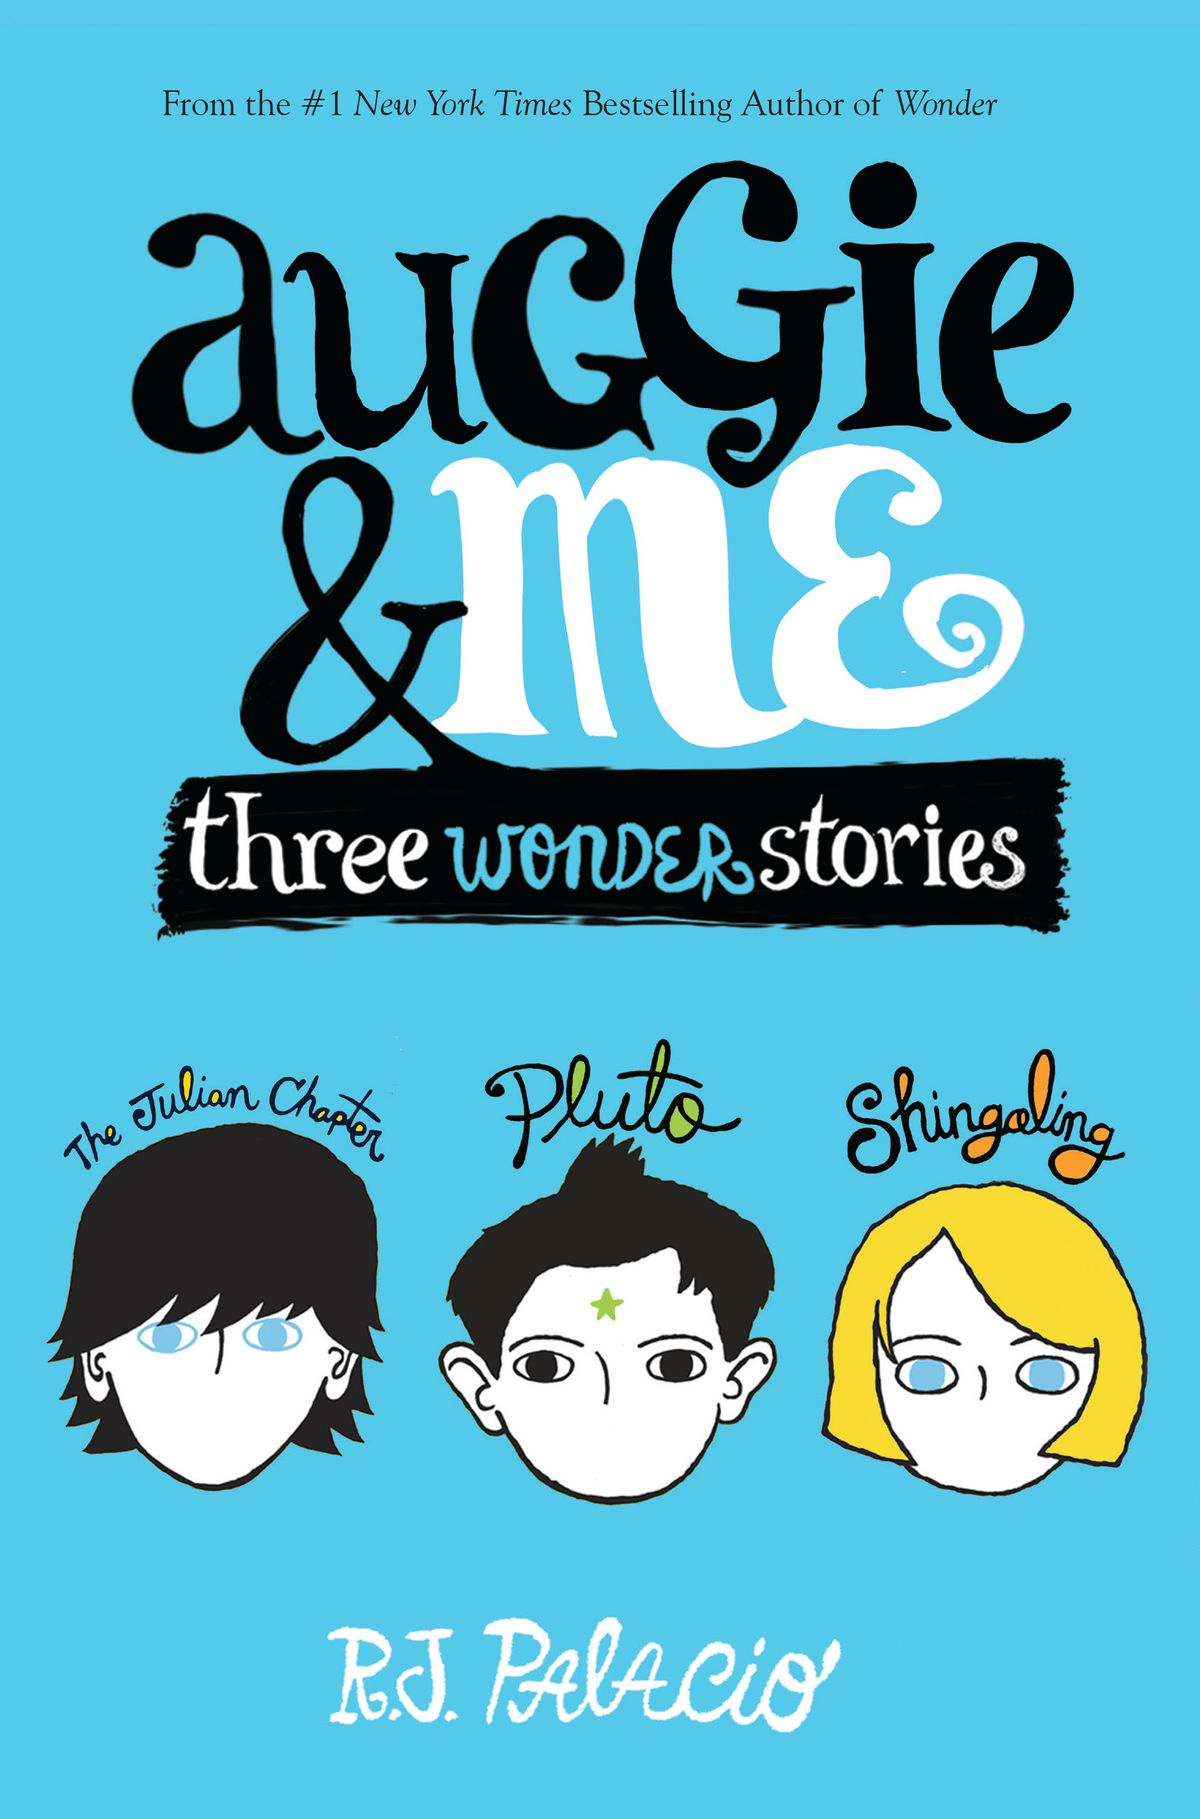 Auggie & Me: Three Wonder Stories ebook by R. J. Palacio.